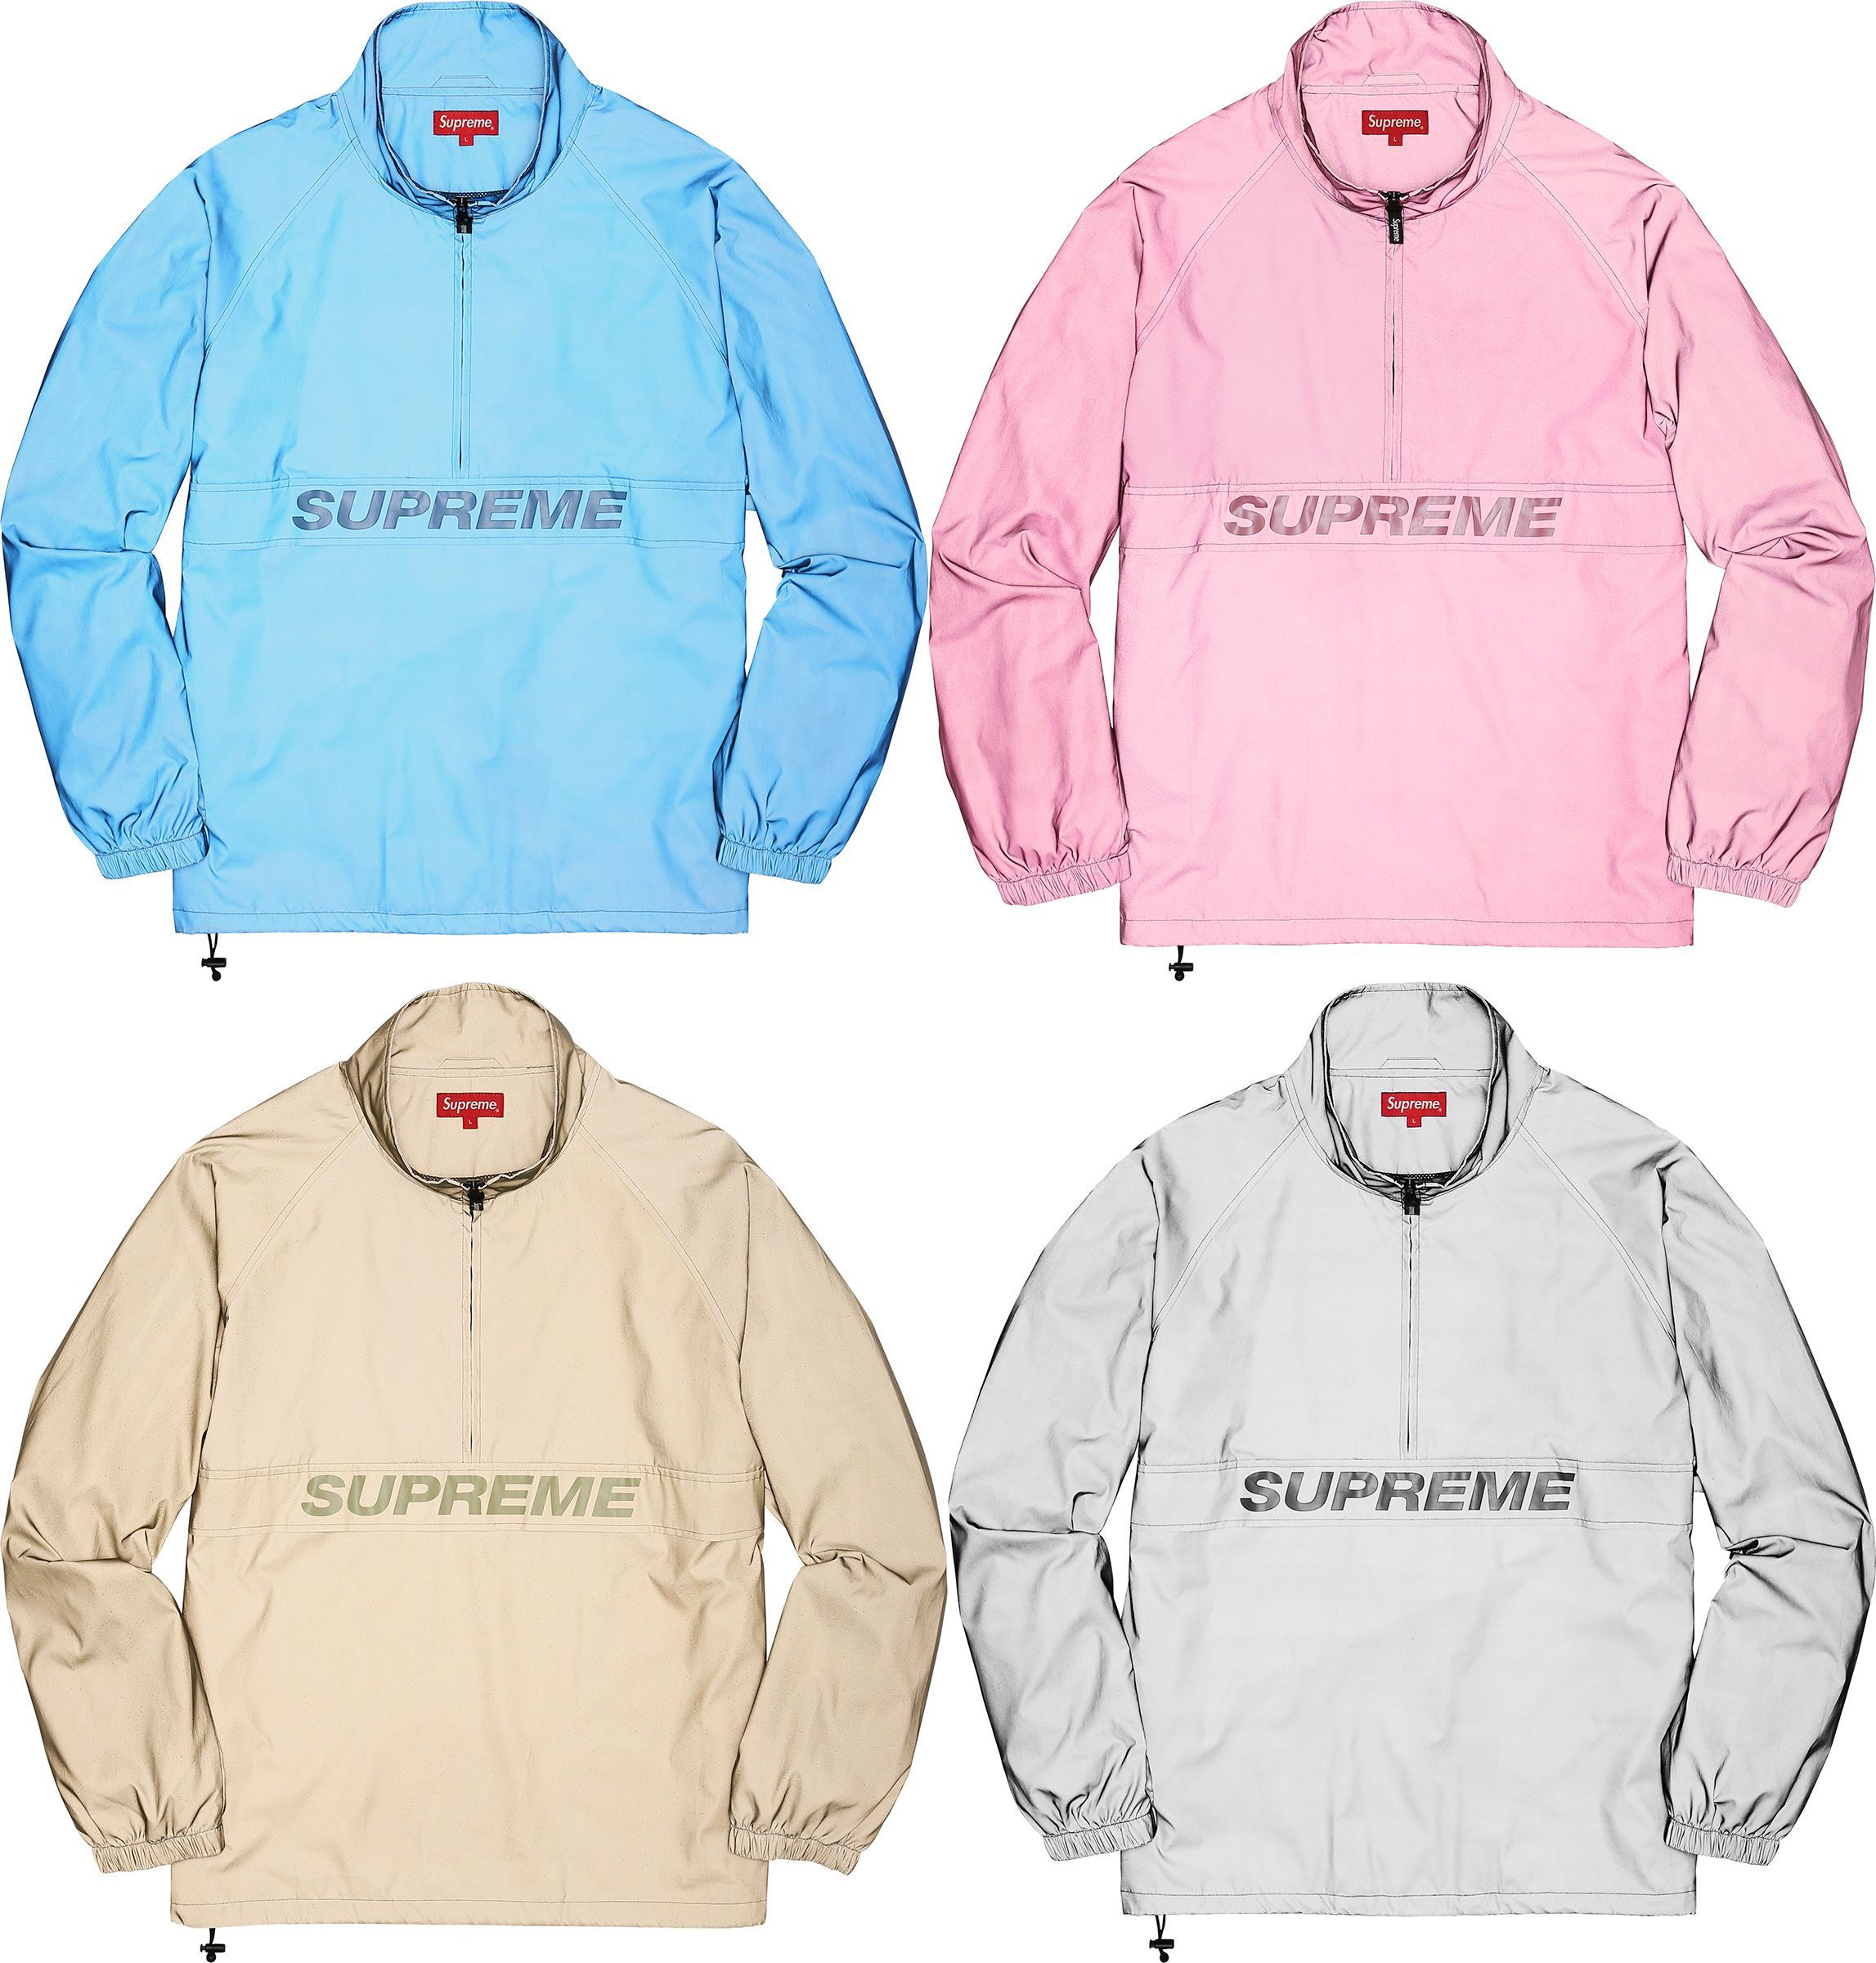 supreme-online-store-20170506-release-items-reflective-half-zip-pullover